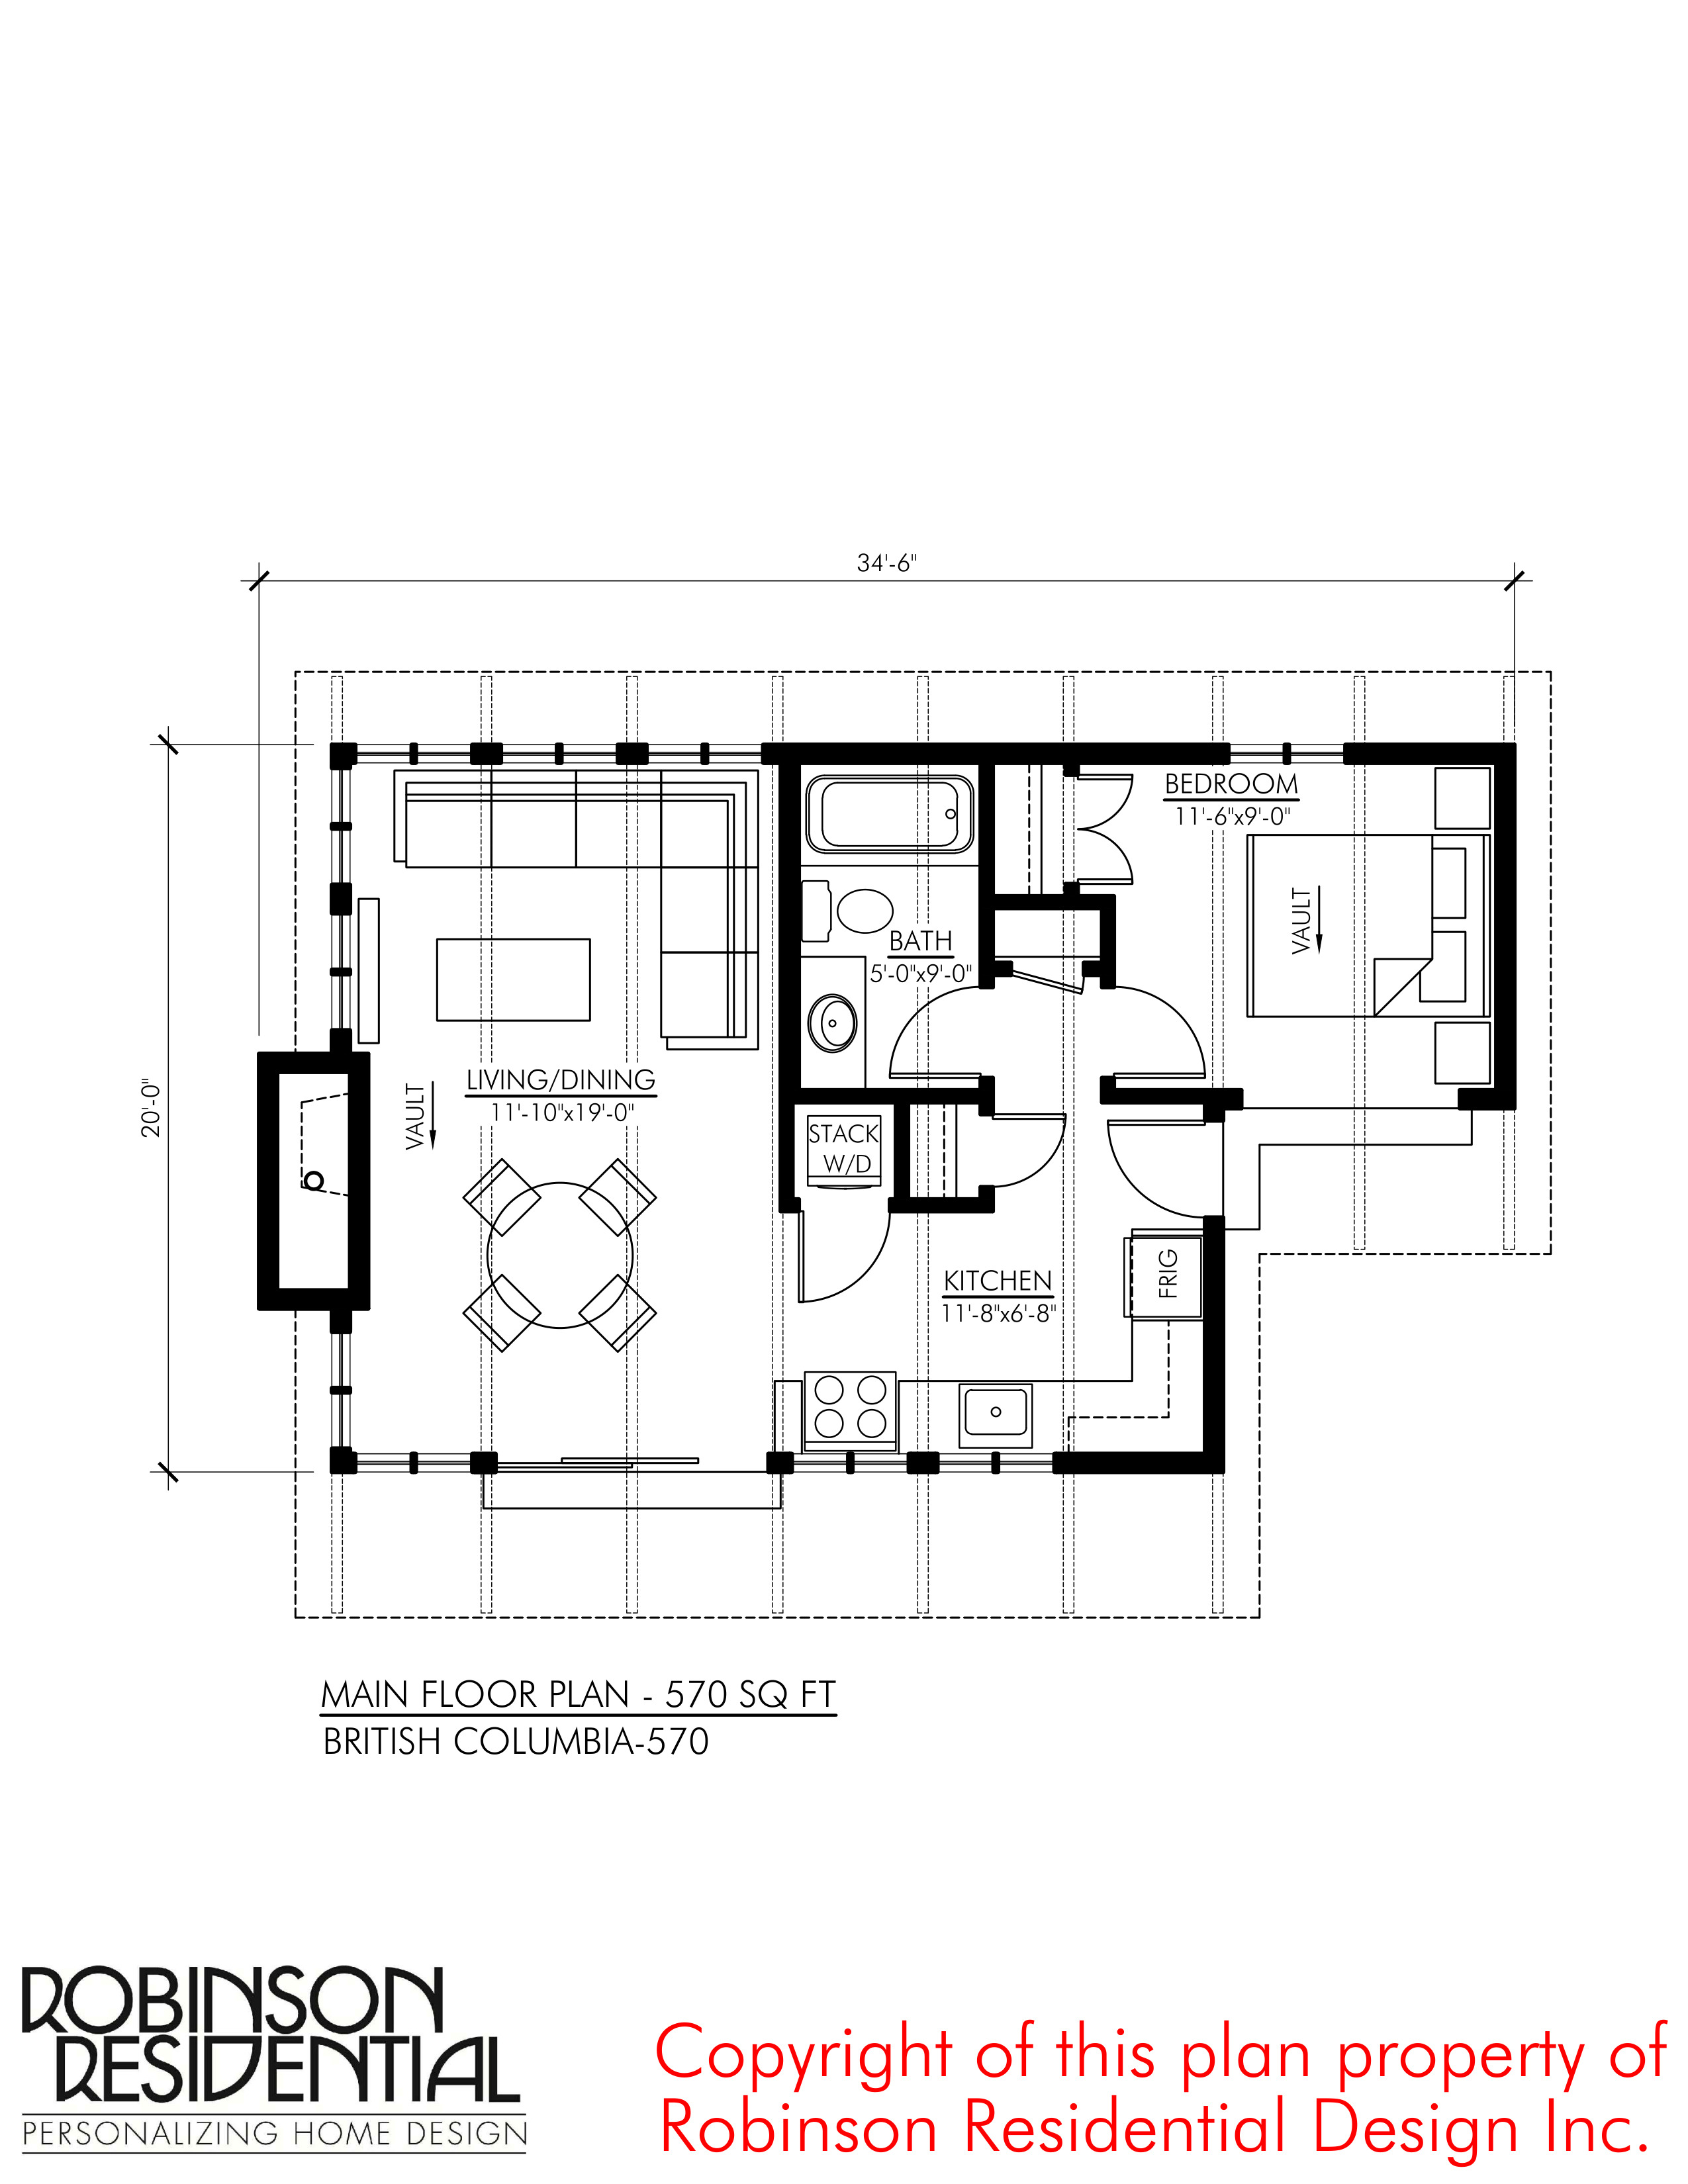 House Plans with Virtual tours Awesome British Columbia 570